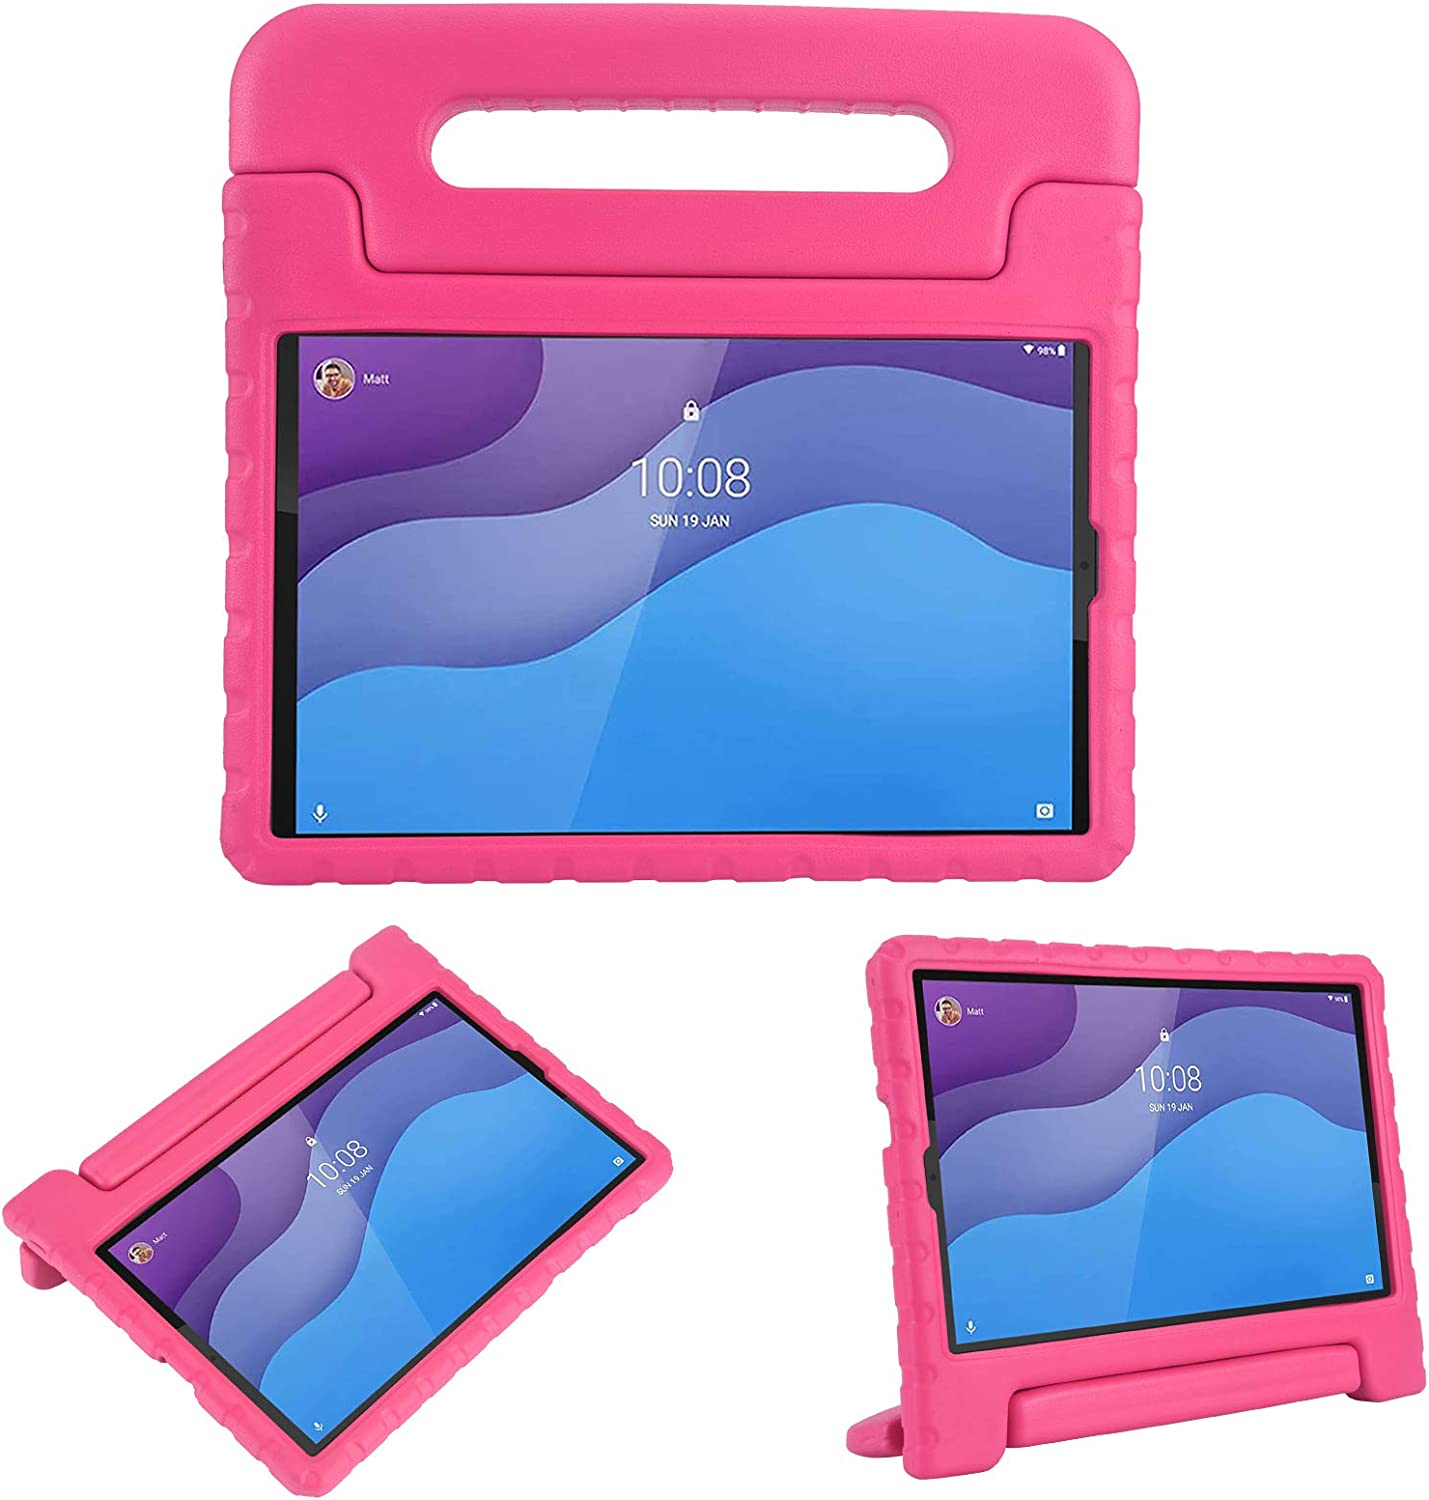 i-original Compatible with Lenovo Tab M10 HD 2nd Gen (TB-X306X) / Smart Tab M10 HD 2nd Gen (TB-X306F) Case,Shockproof EVA Case for Kids,Convertible Handle Lightweight Protective Cove (Rose)